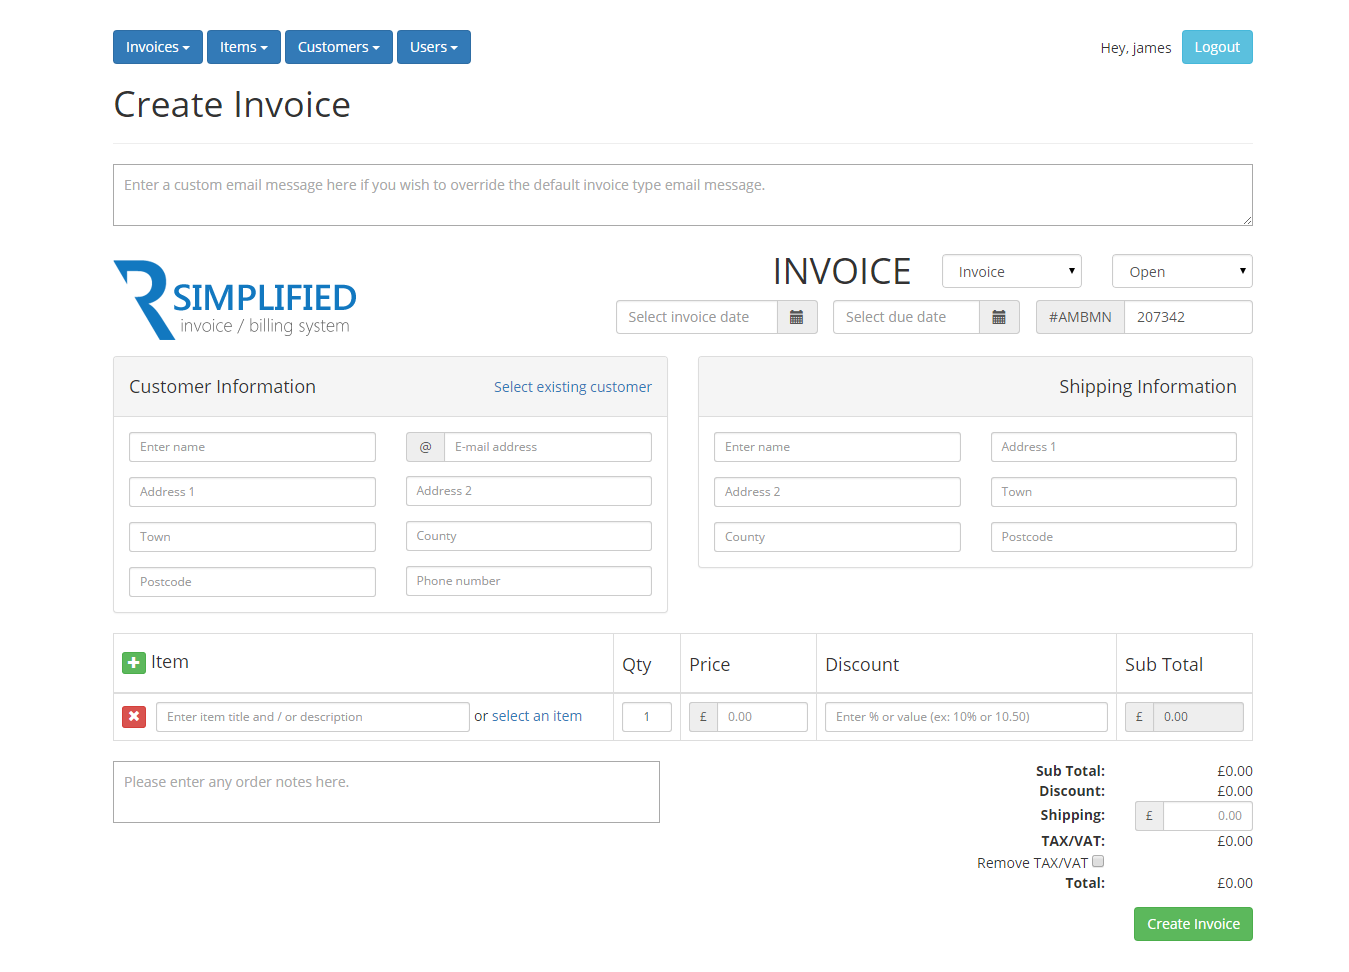 Darkfaderus  Terrific Simplified Php Invoice  Billing System By Rebootdigitaluk  With Handsome  Createinvoicepng  With Enchanting Sage Invoicing Software Also Invoice Costs In Addition Invoice Ledger And Invoice Billing Software Free Download Full Version As Well As Invoice Blanks Additionally Template Of Invoice For Services From Codecanyonnet With Darkfaderus  Handsome Simplified Php Invoice  Billing System By Rebootdigitaluk  With Enchanting  Createinvoicepng  And Terrific Sage Invoicing Software Also Invoice Costs In Addition Invoice Ledger From Codecanyonnet